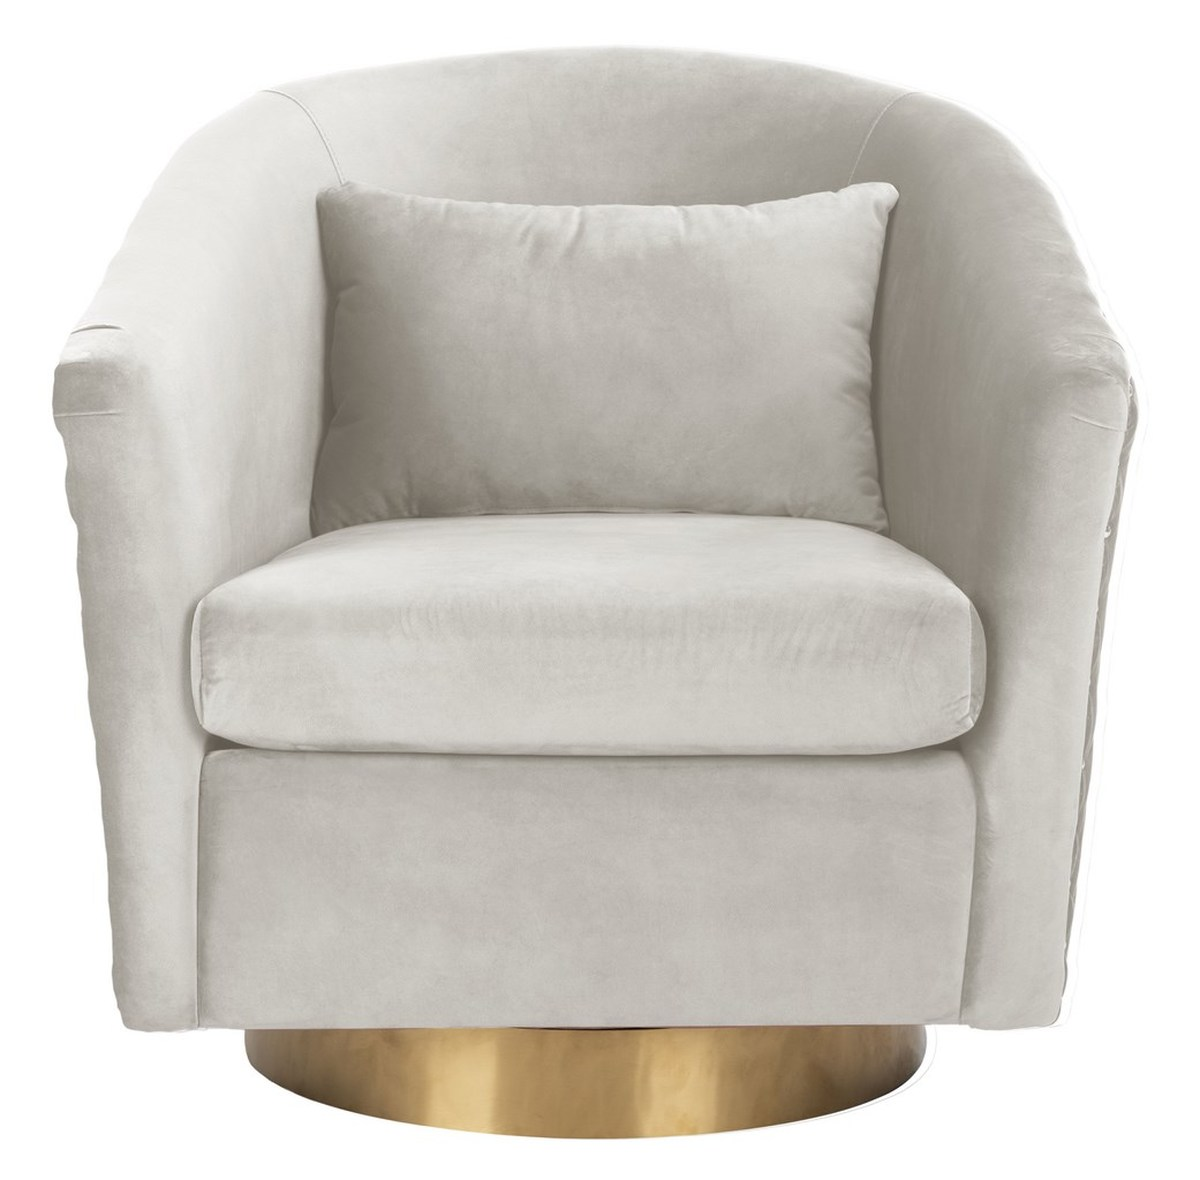 swivel chairs tub collectionitem bradley louise large furniture chair